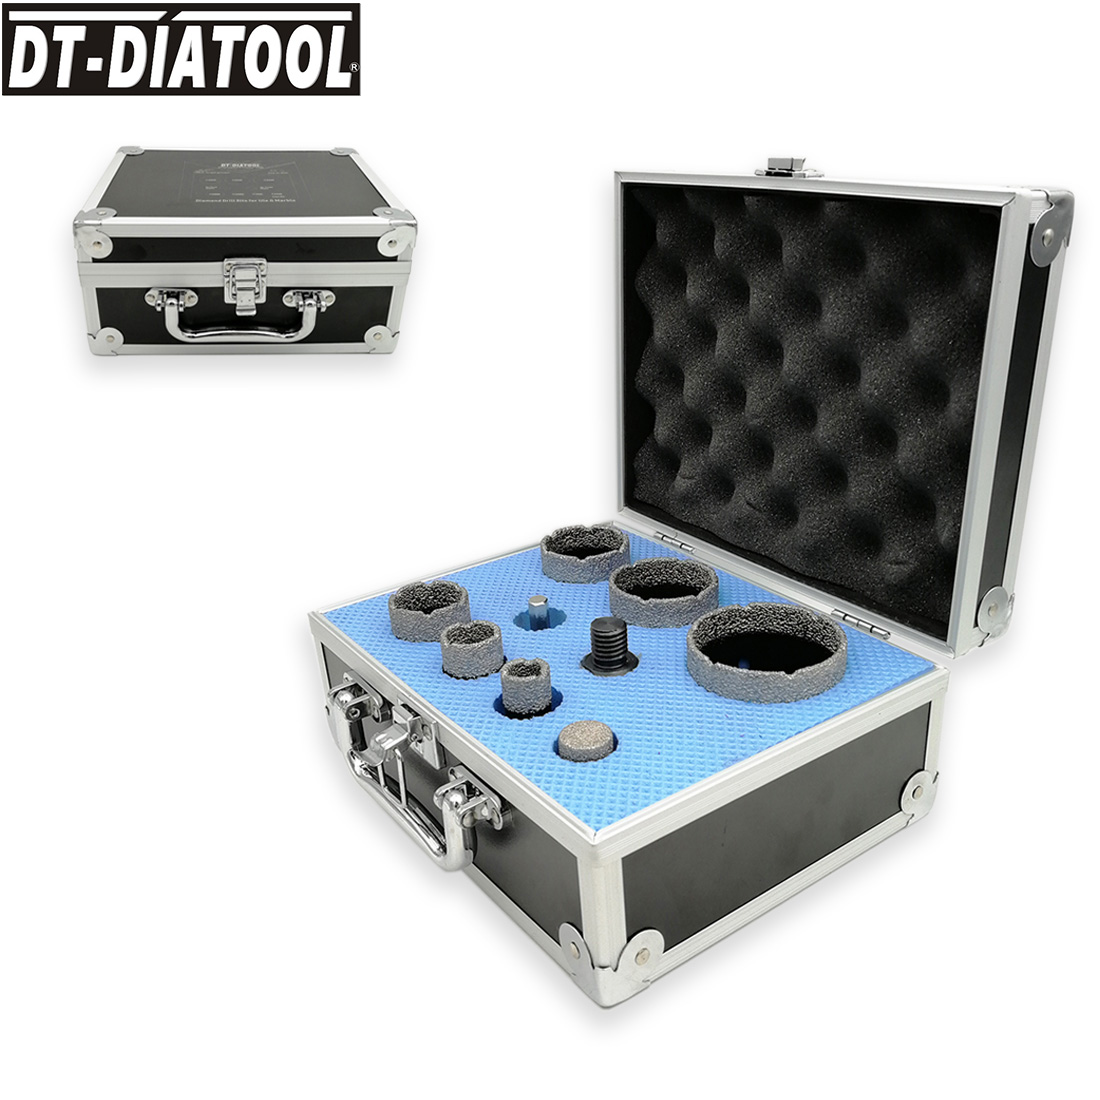 DT DIATOOL 9pcs kit Vacuum Brazed Diamond Drill Hole Saw Sets 5 8 11 Connection Drilling